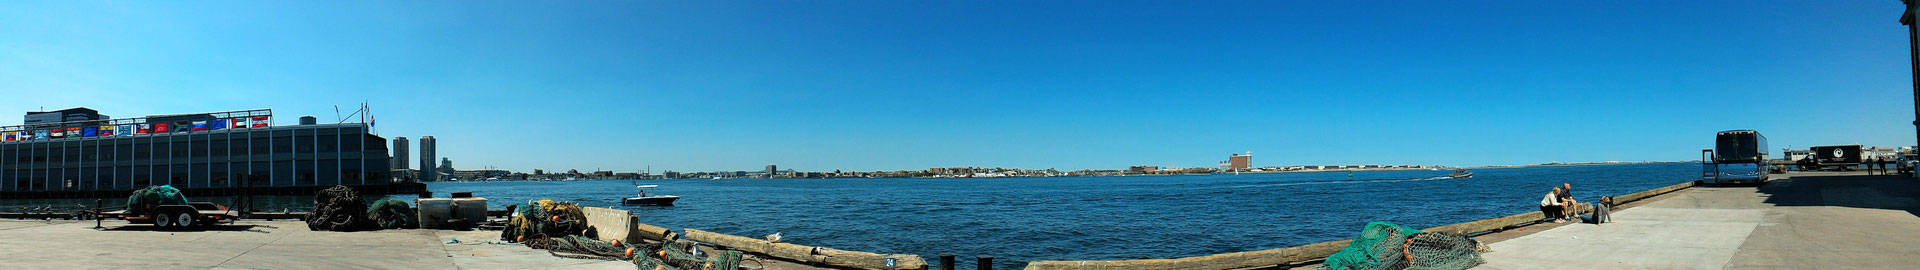 Baie de BOSTON